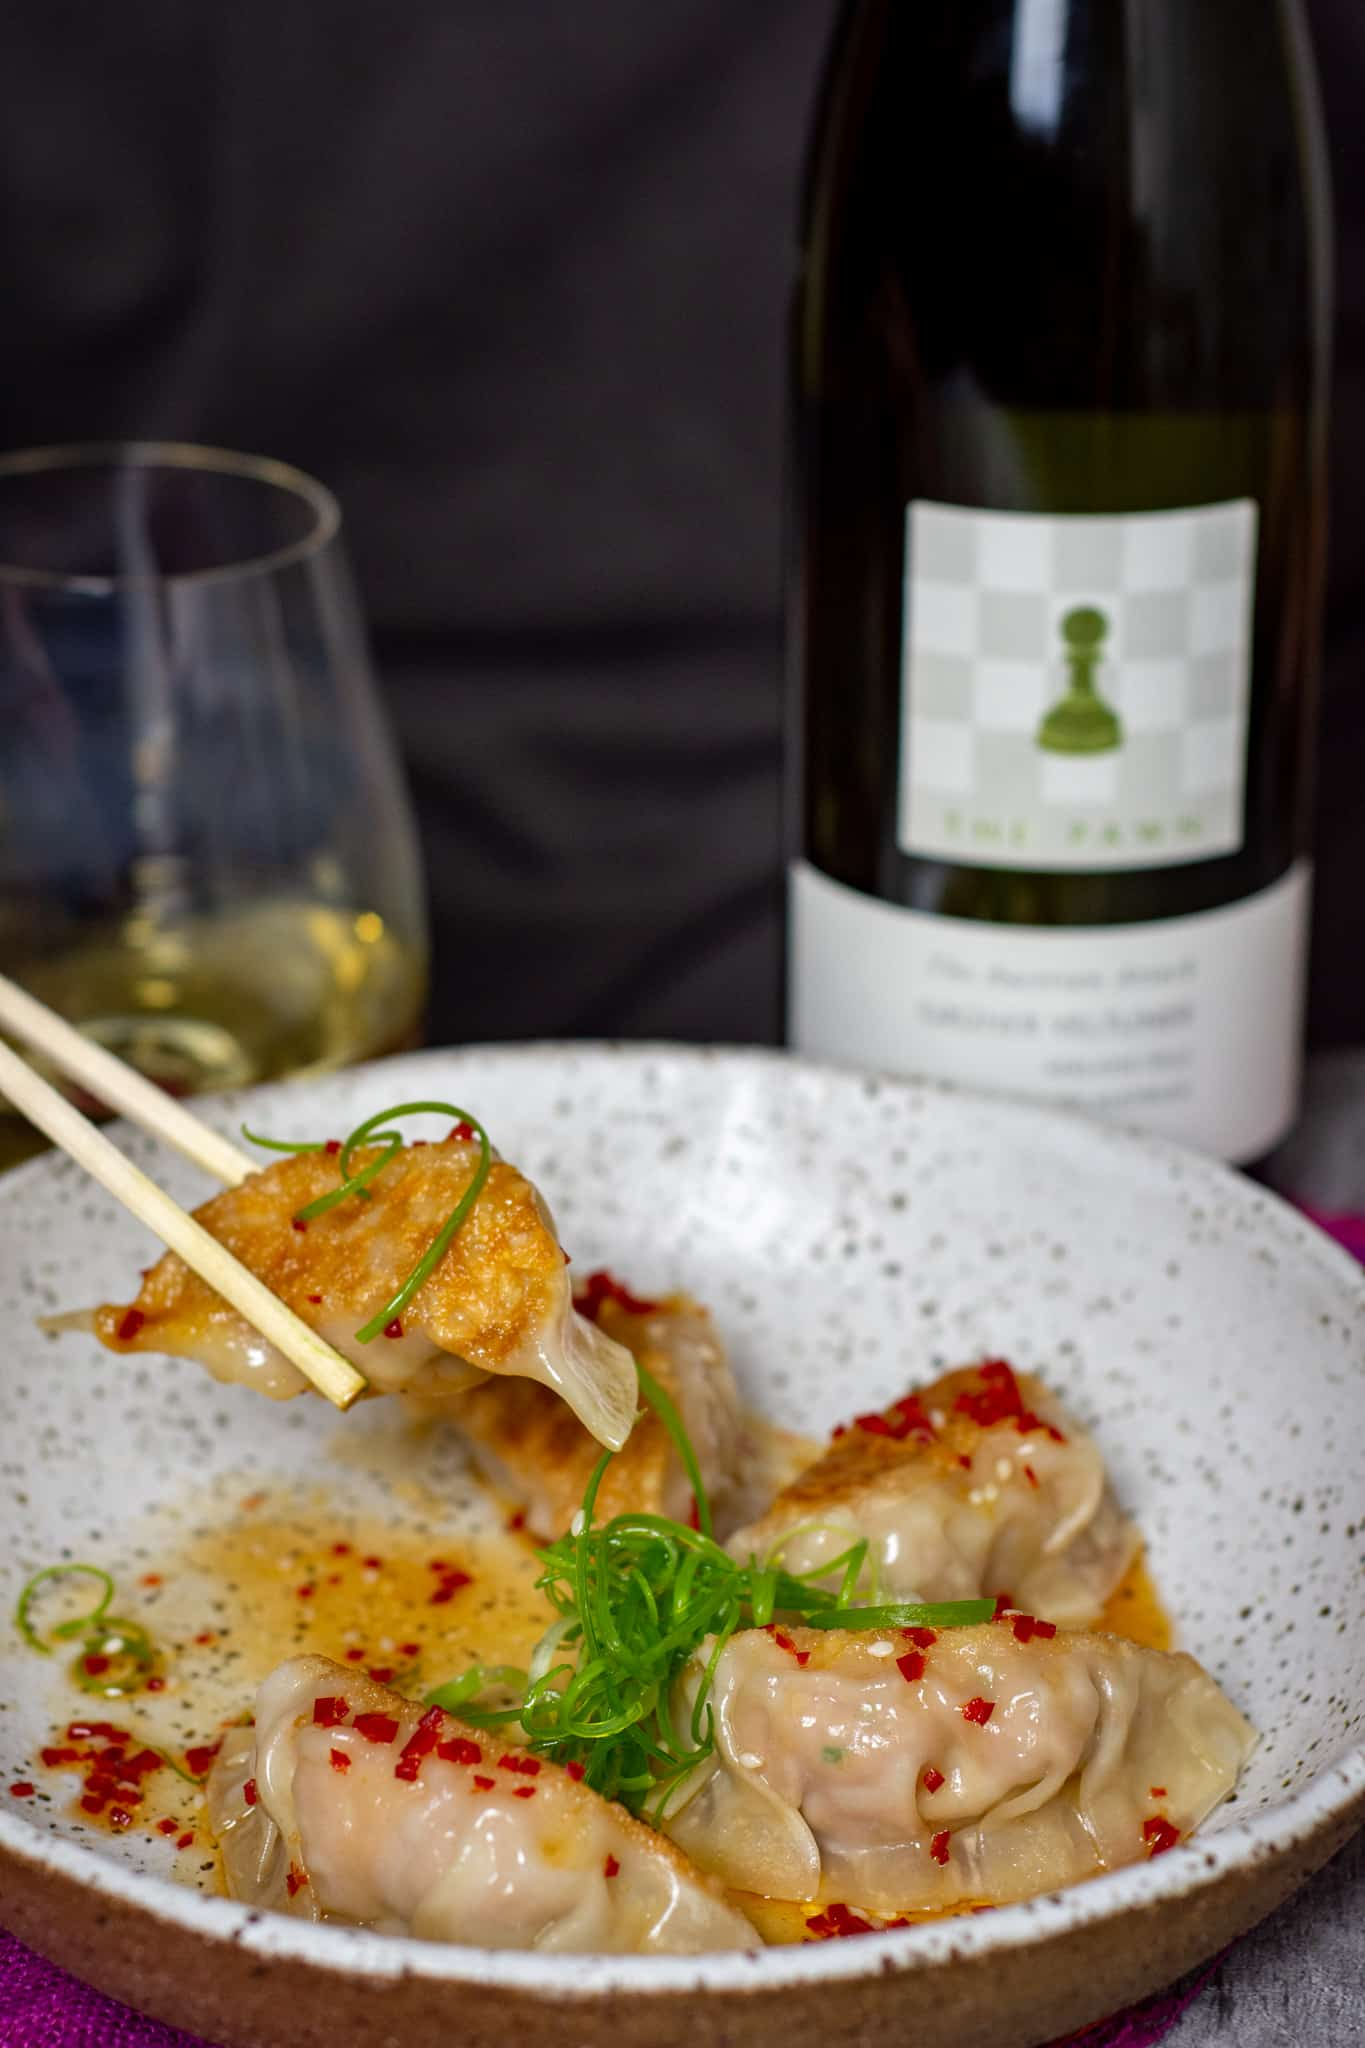 someone eating pork & prawm dumplings with chopsticks and a bottle of The Pawn Wine Co gruner veltliner in background